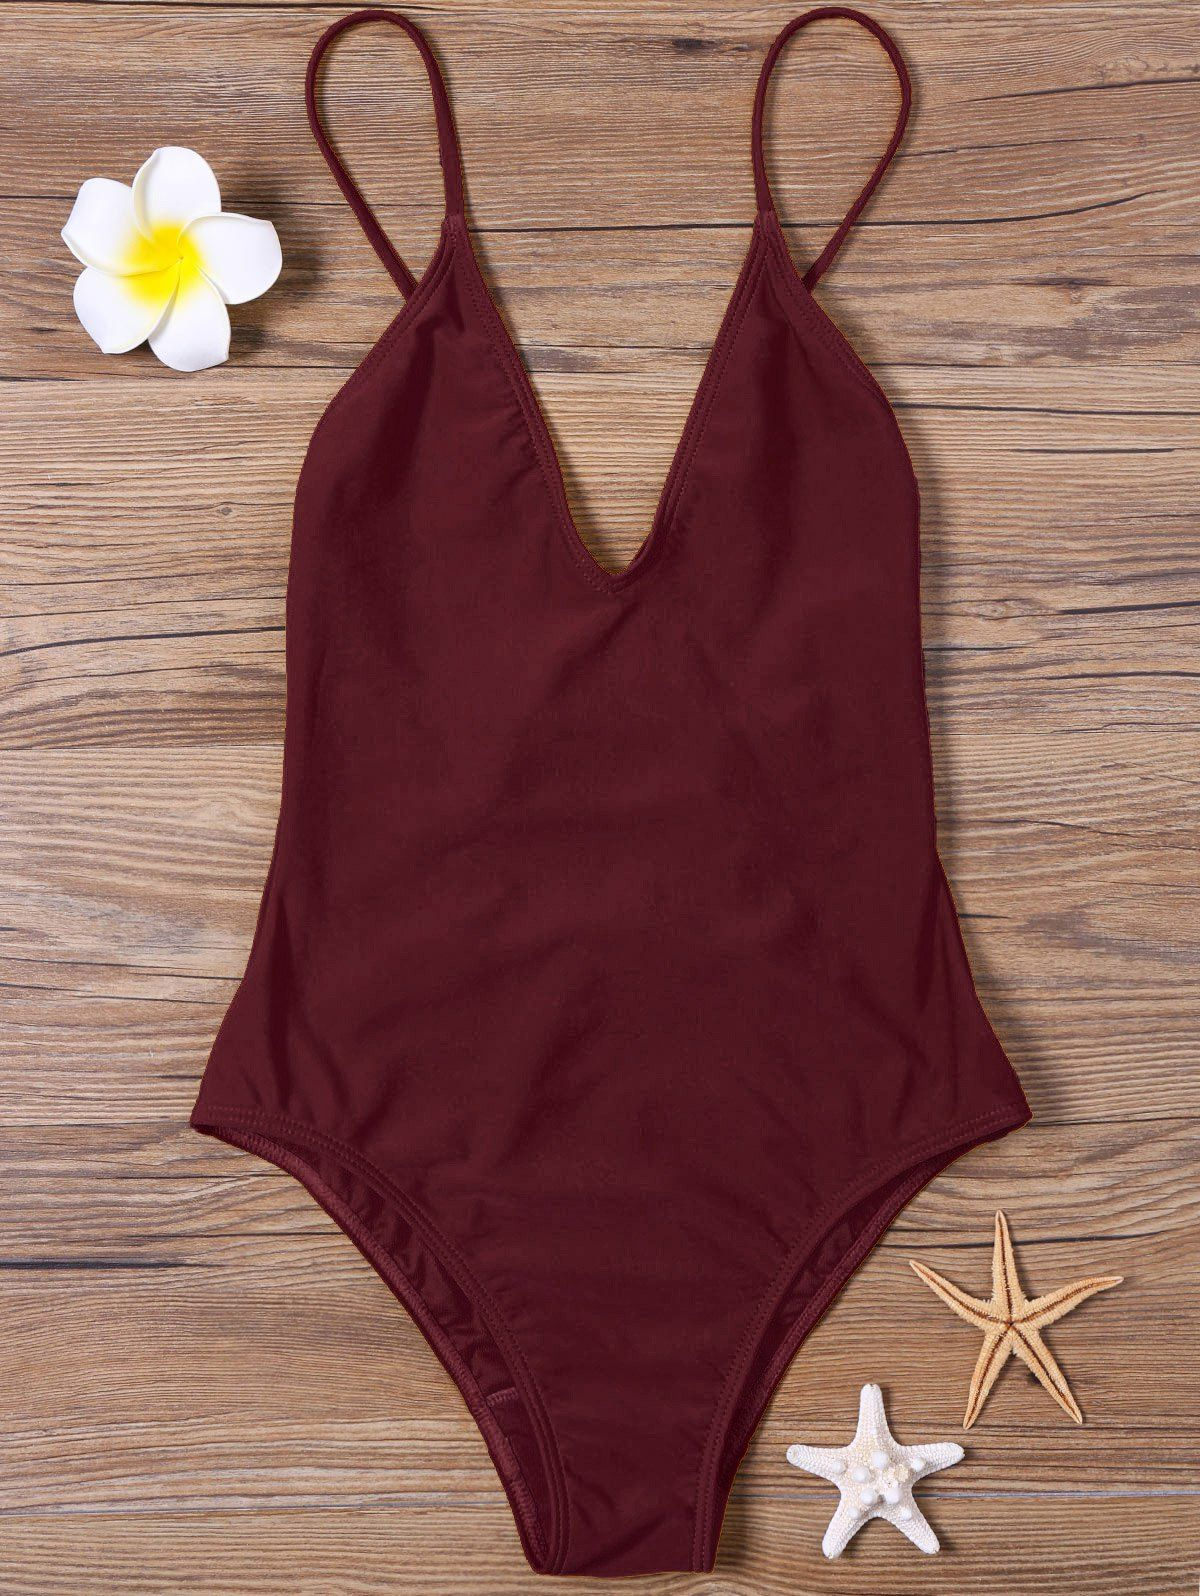 e767af39a95 Open Back High Cut One-piece Swimsuit - DARK RED M | Swimmies en ...